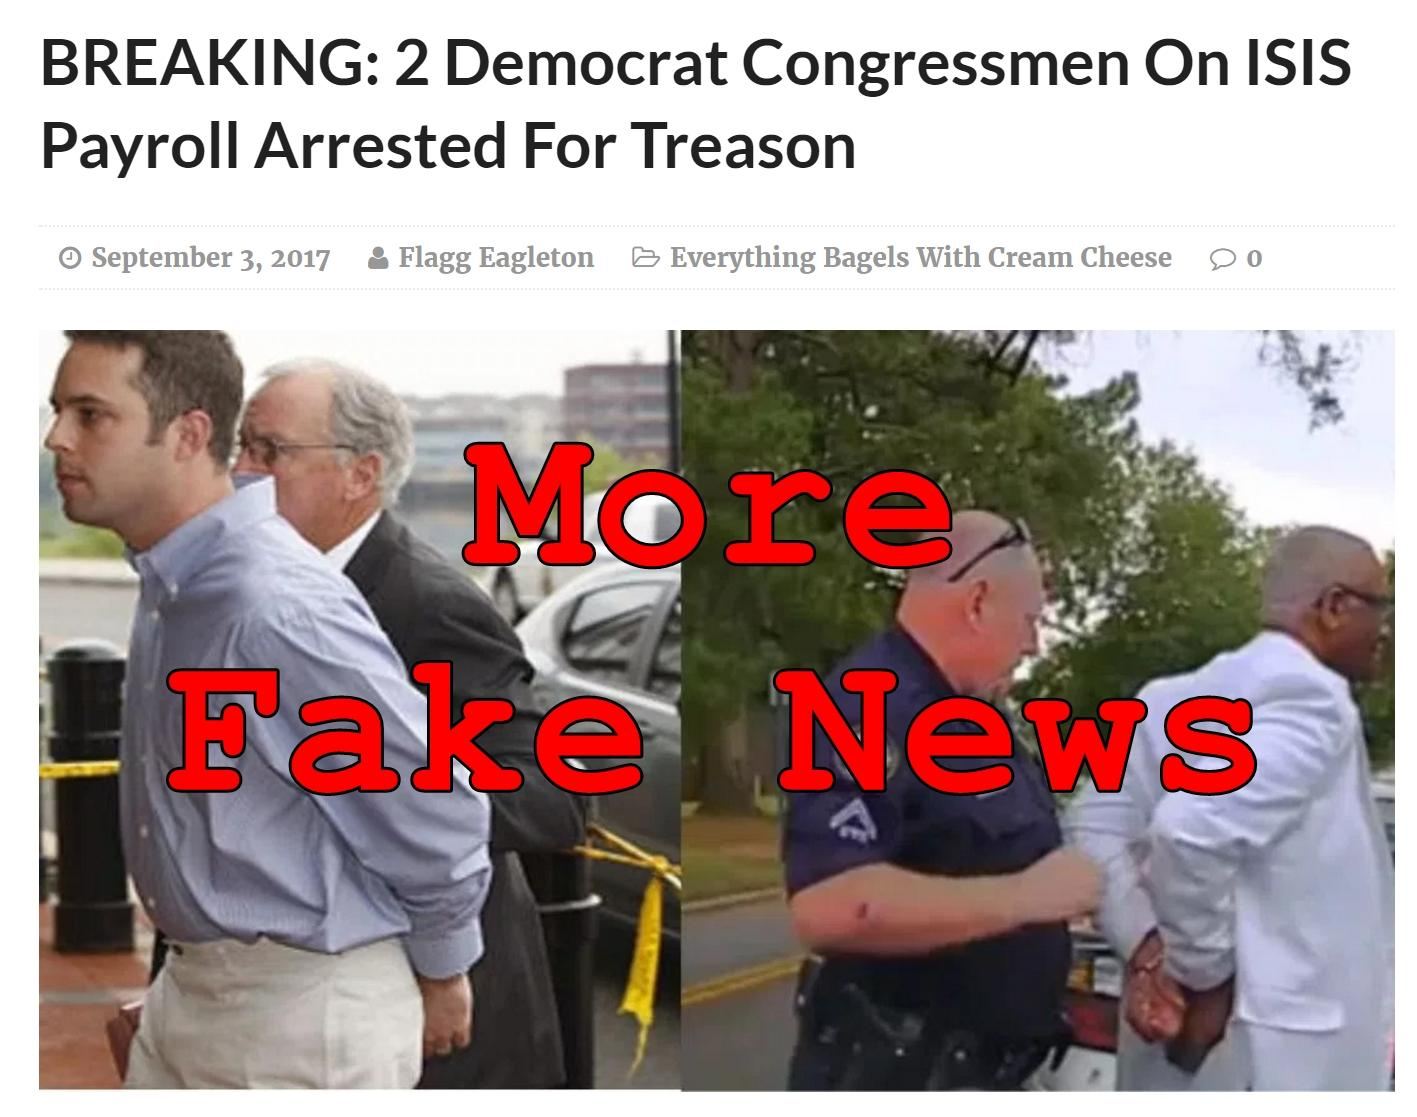 Fake News: NO 2 Democrat Congressmen On ISIS Payroll, NOT Arrested For Treason